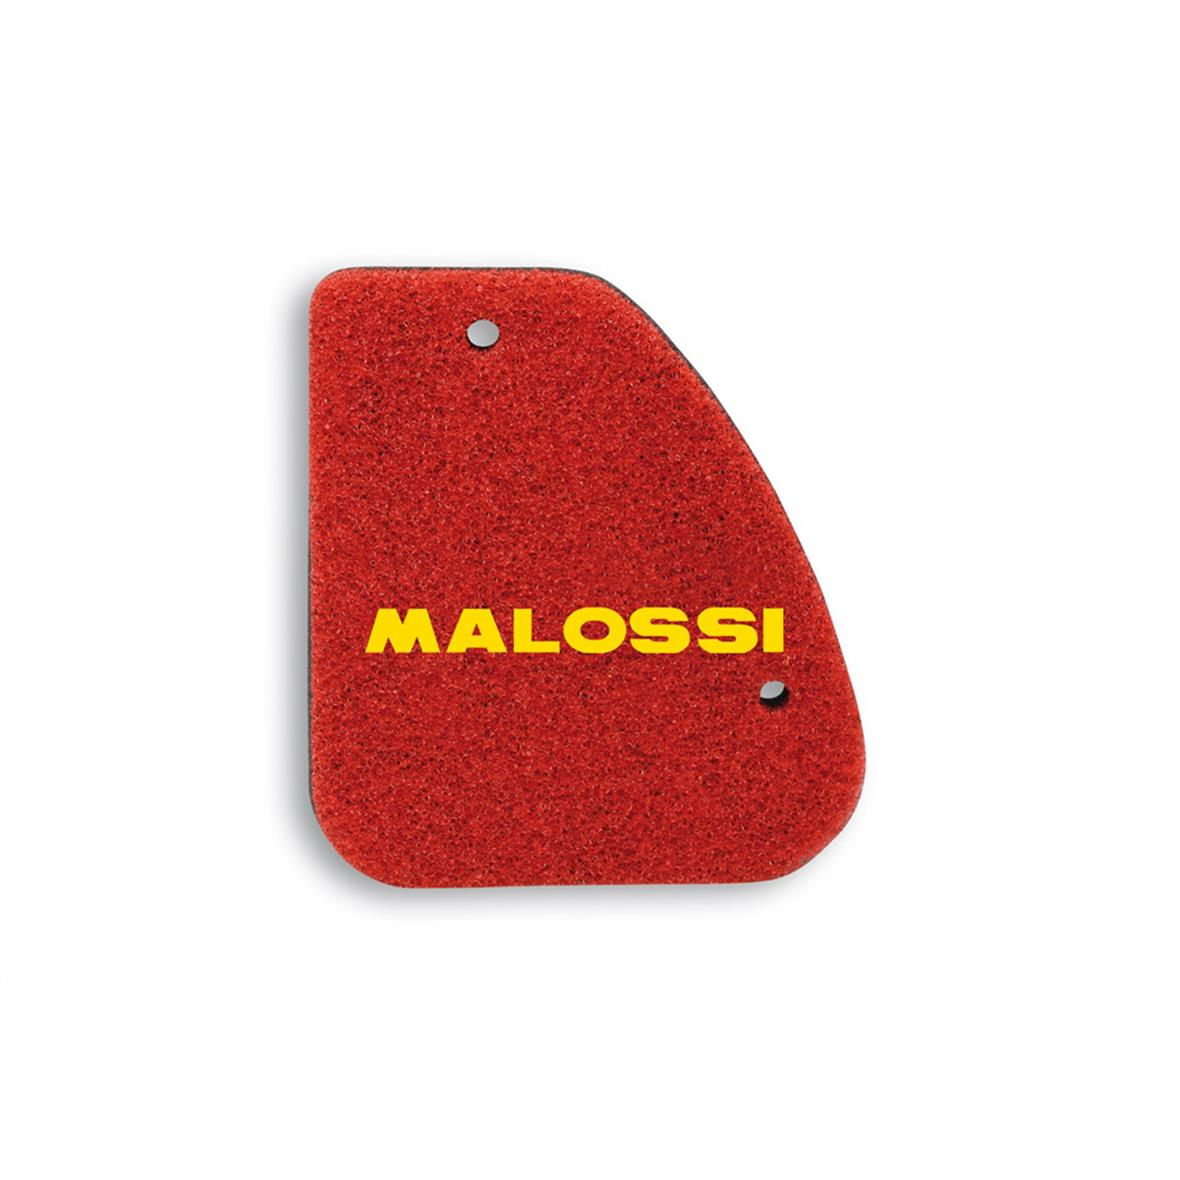 Product Image for 'Air Filter Sponge MALOSSI Double Red SpongeTitle'